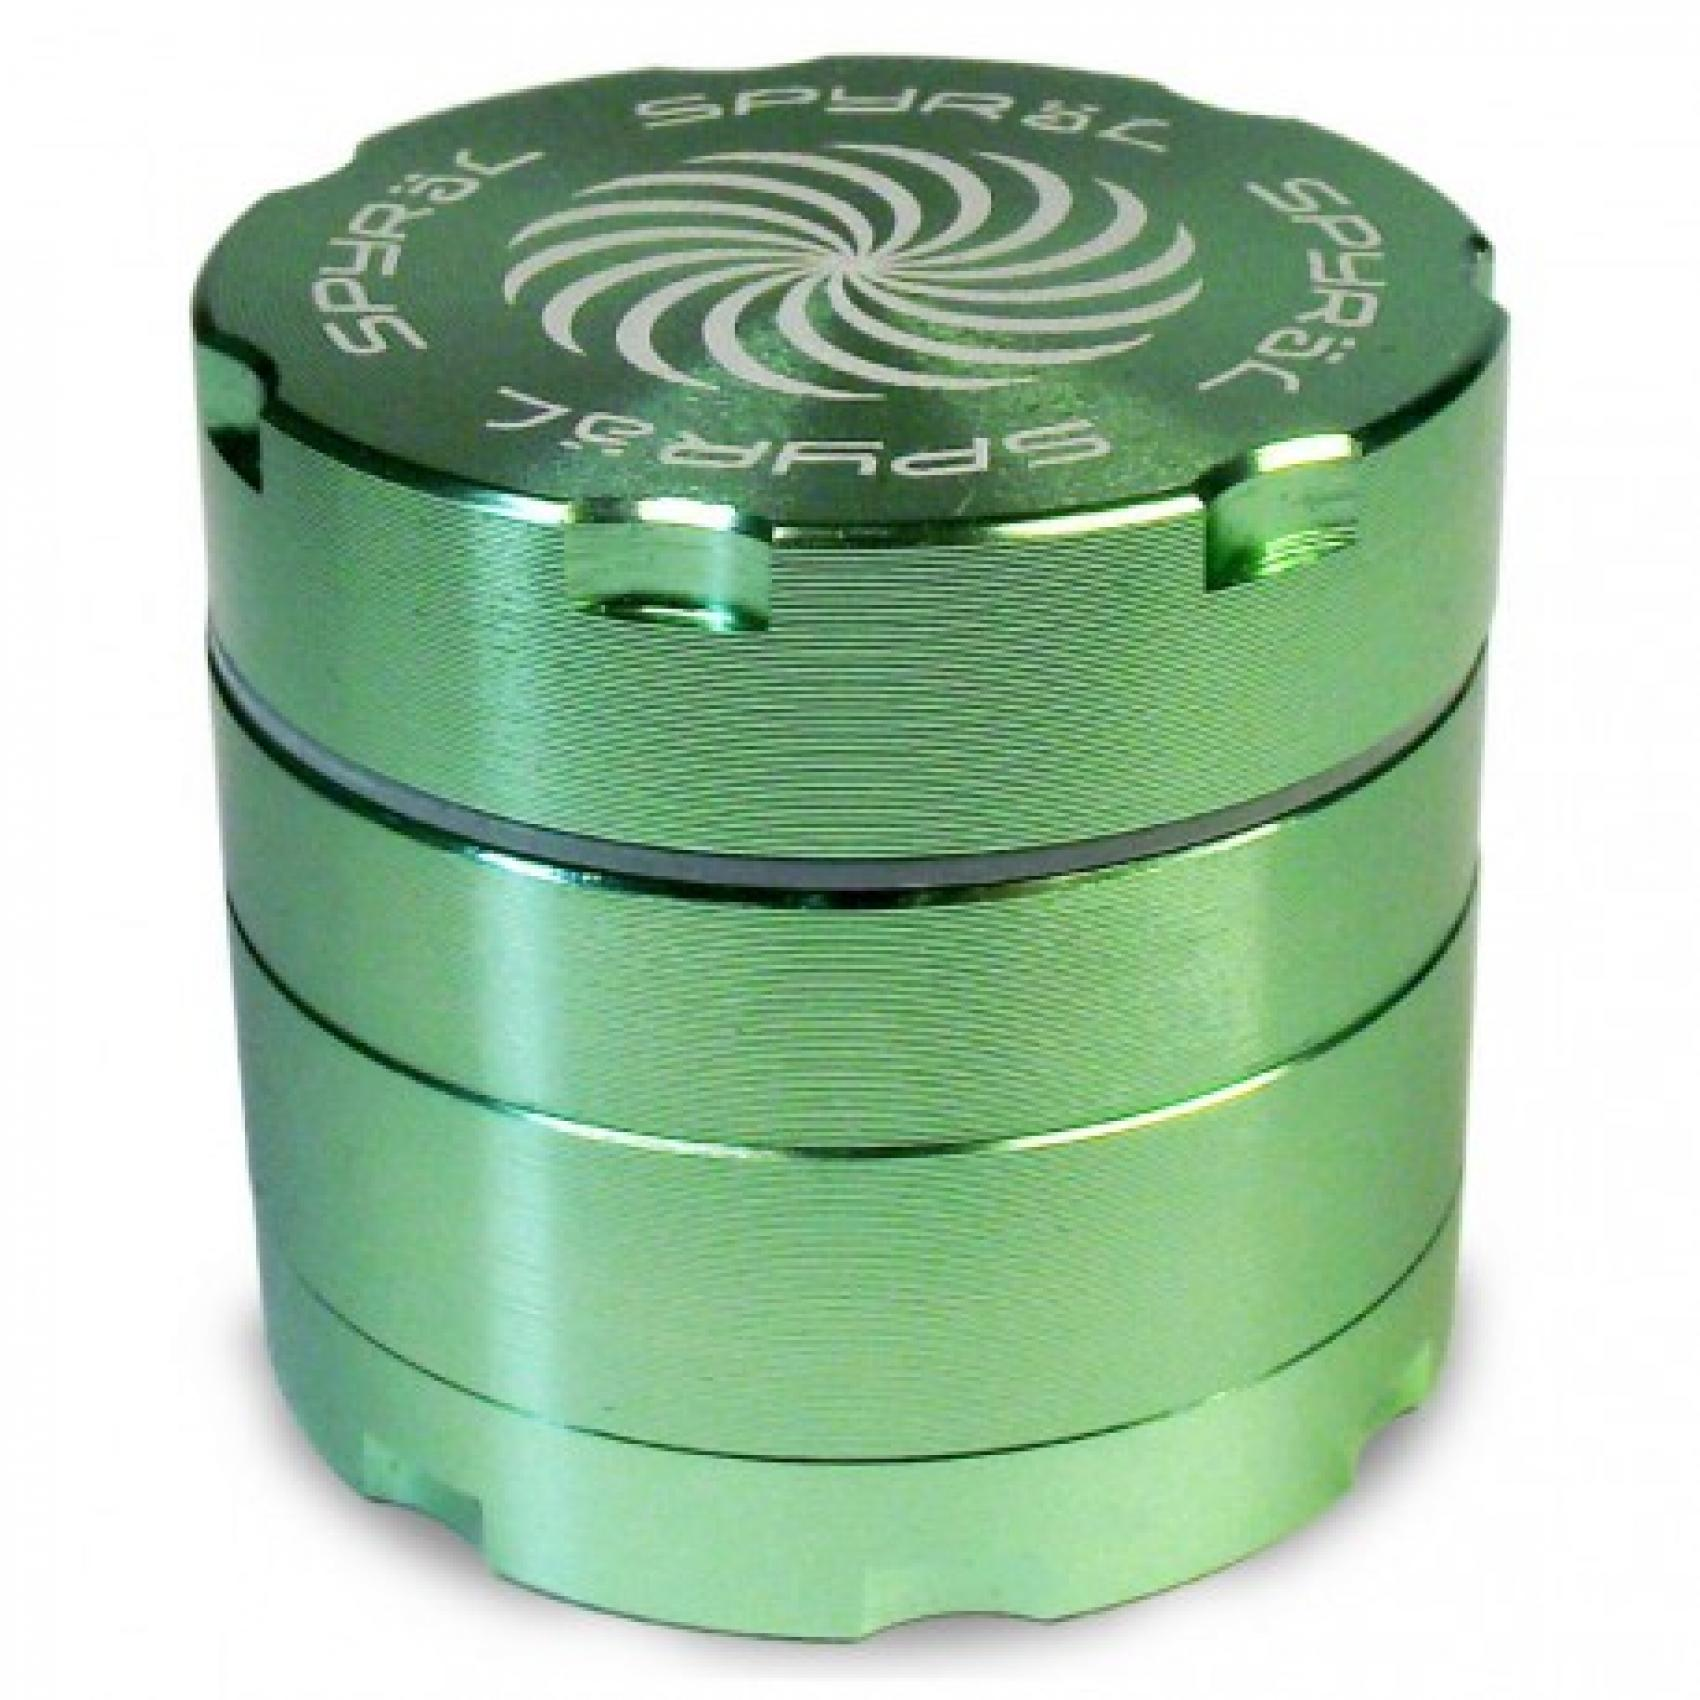 Spyräl Grinder 40 mm green 4-piece